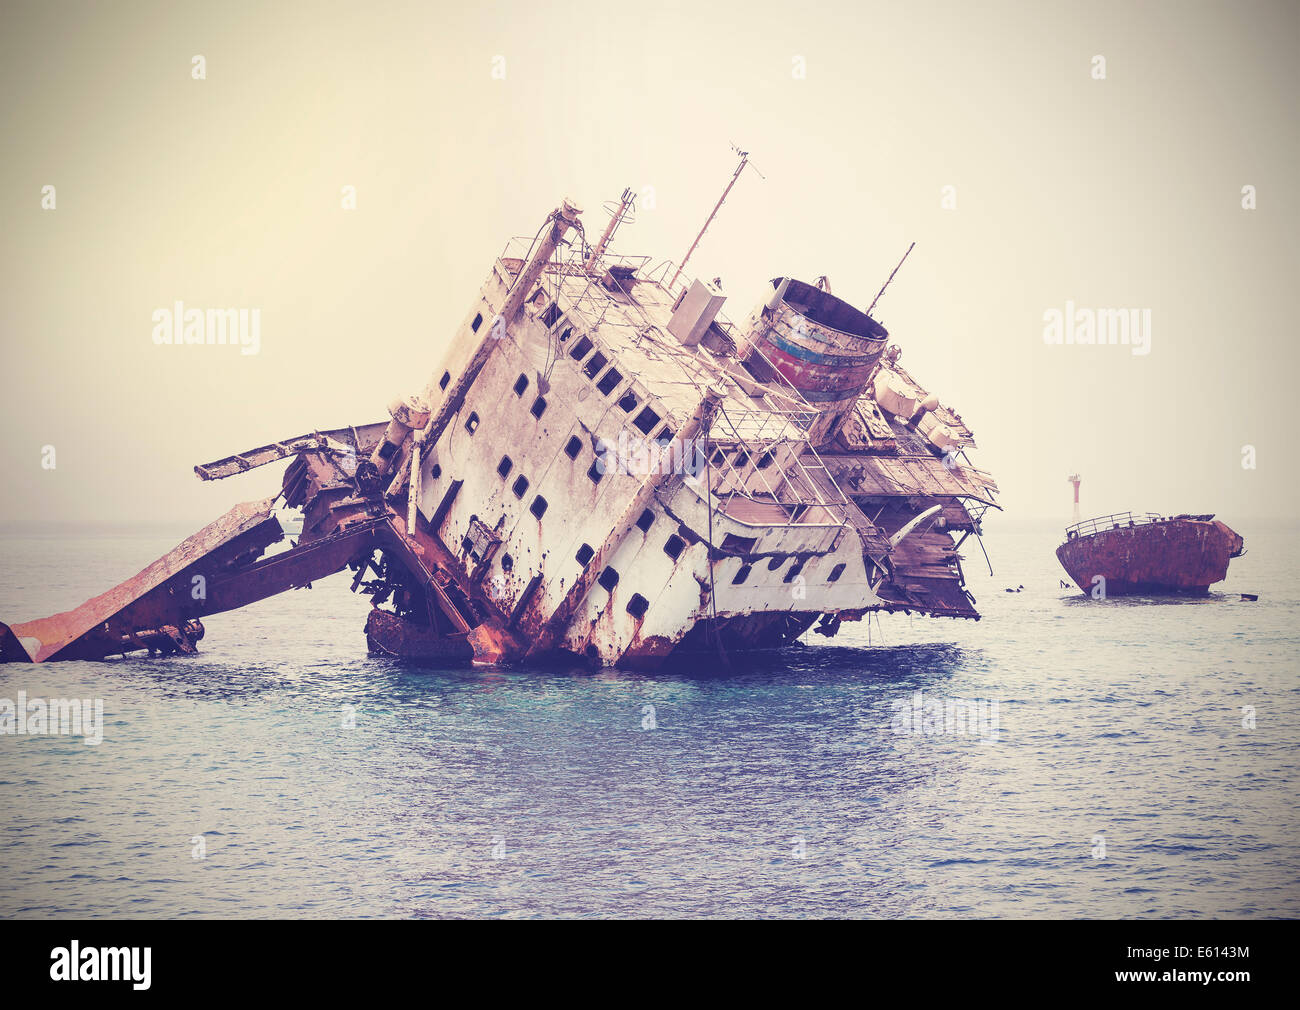 The sunken shipwreck on the reef, Egypt, vintage retro filtered. - Stock Image